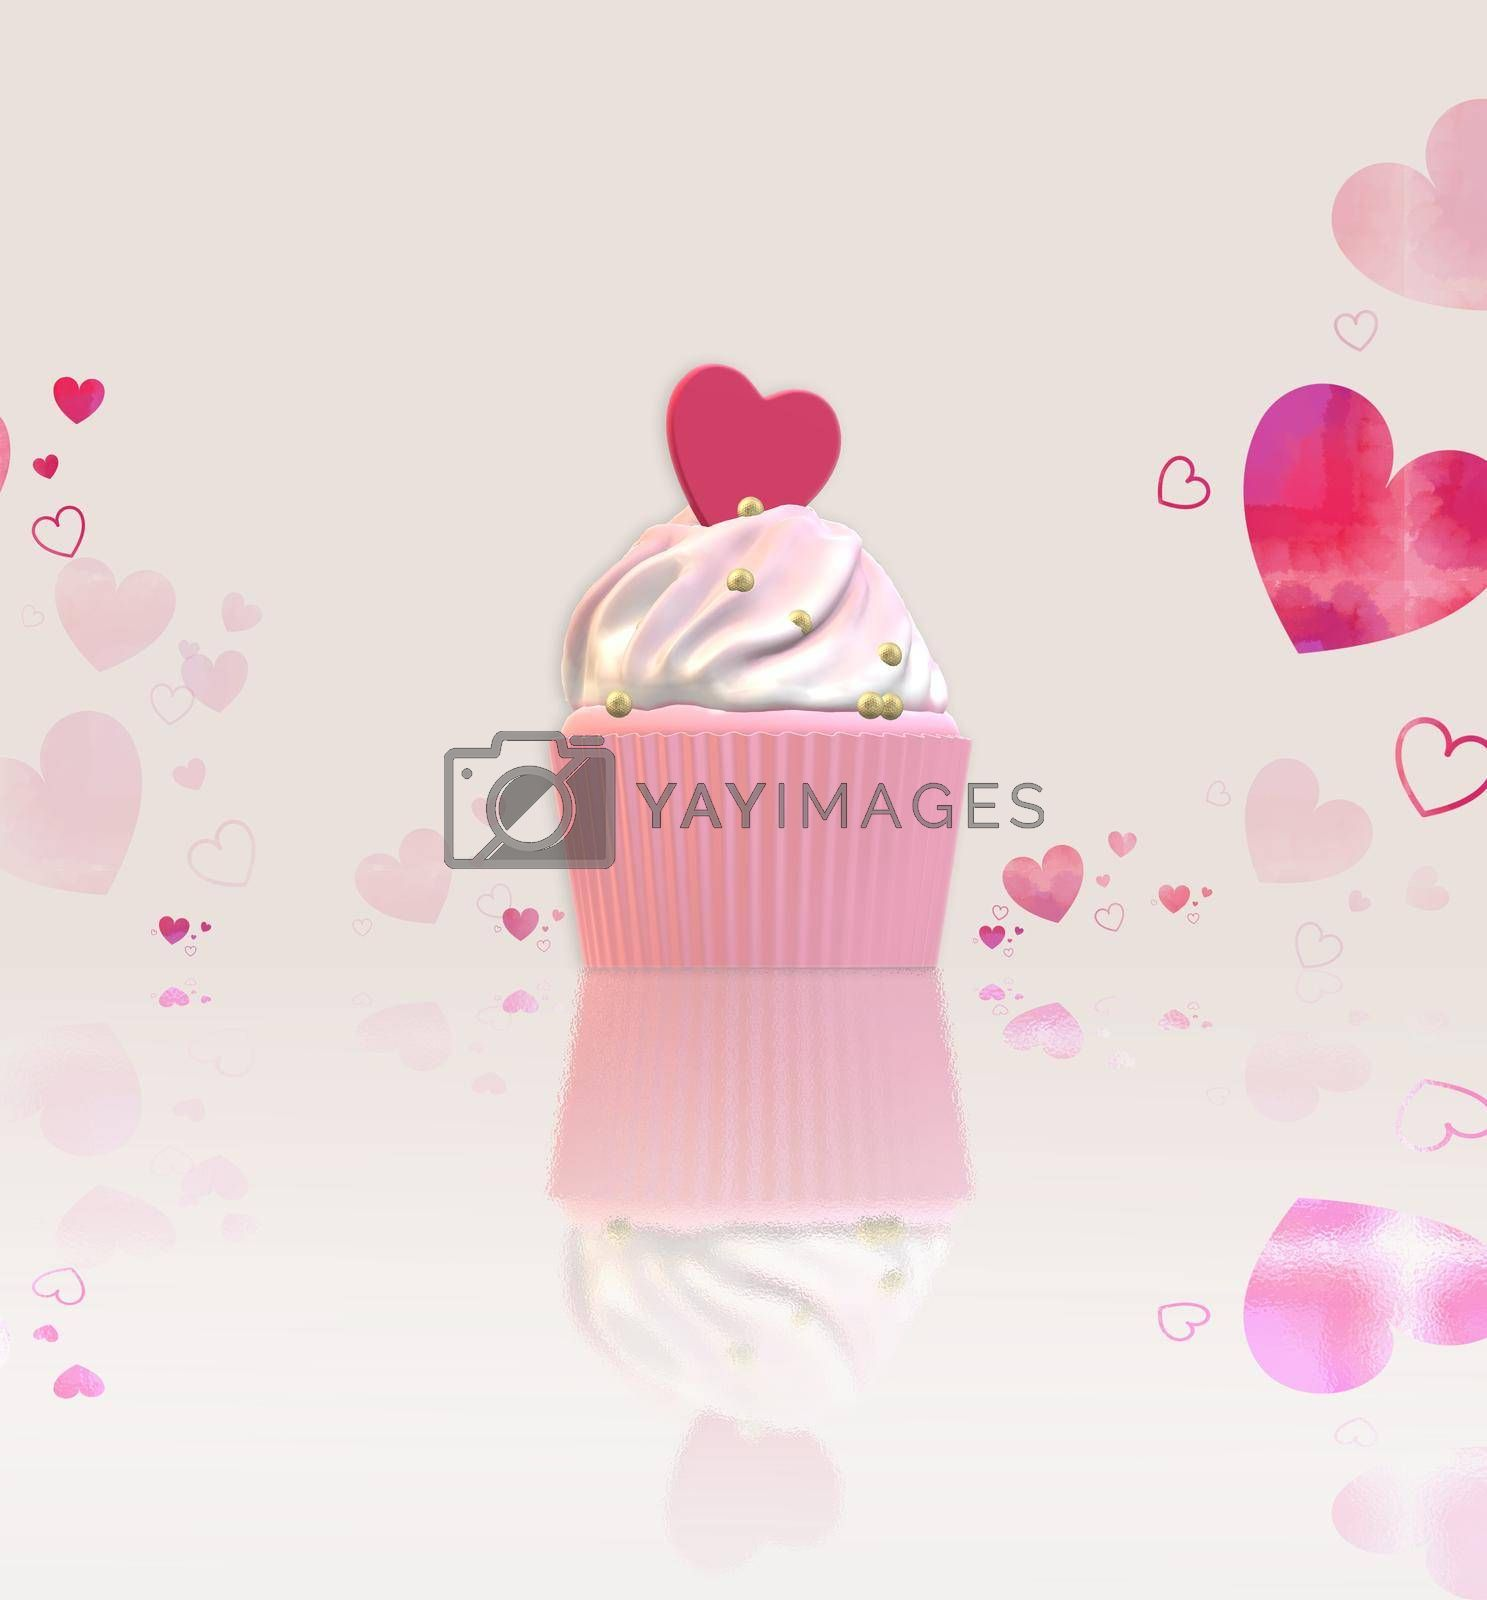 Cute cupcake with pink heart on top, reflection with confetti. Valentines, birthday, mothers day, love concept. 3D rendering